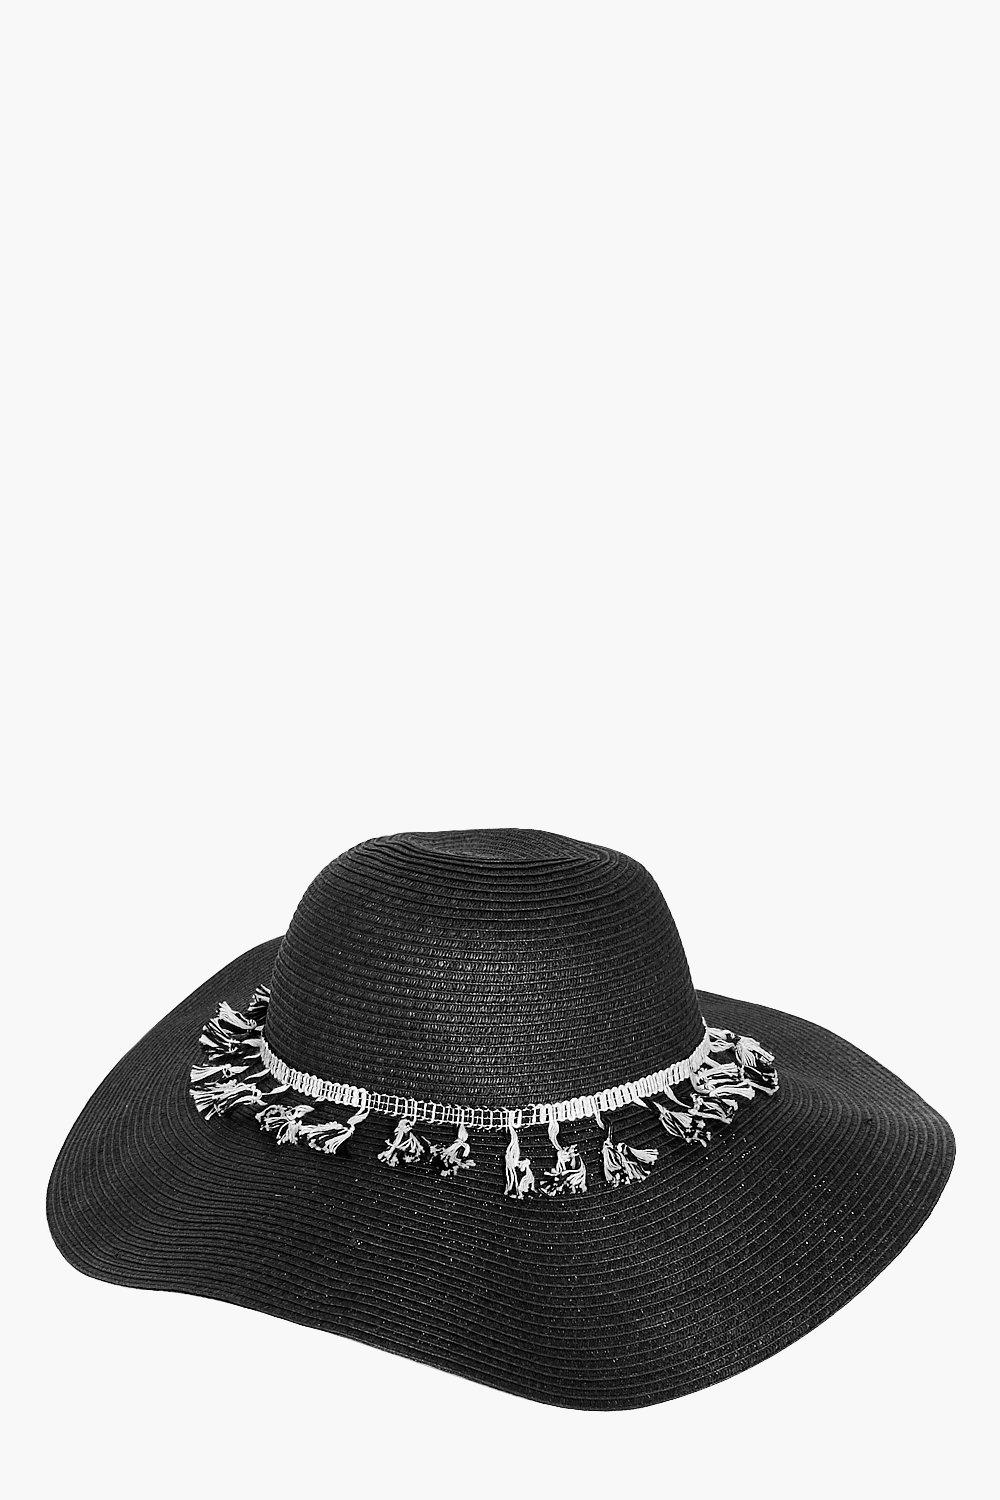 Fringe Trim Floppy Hat - black - Kate Fringe Trim